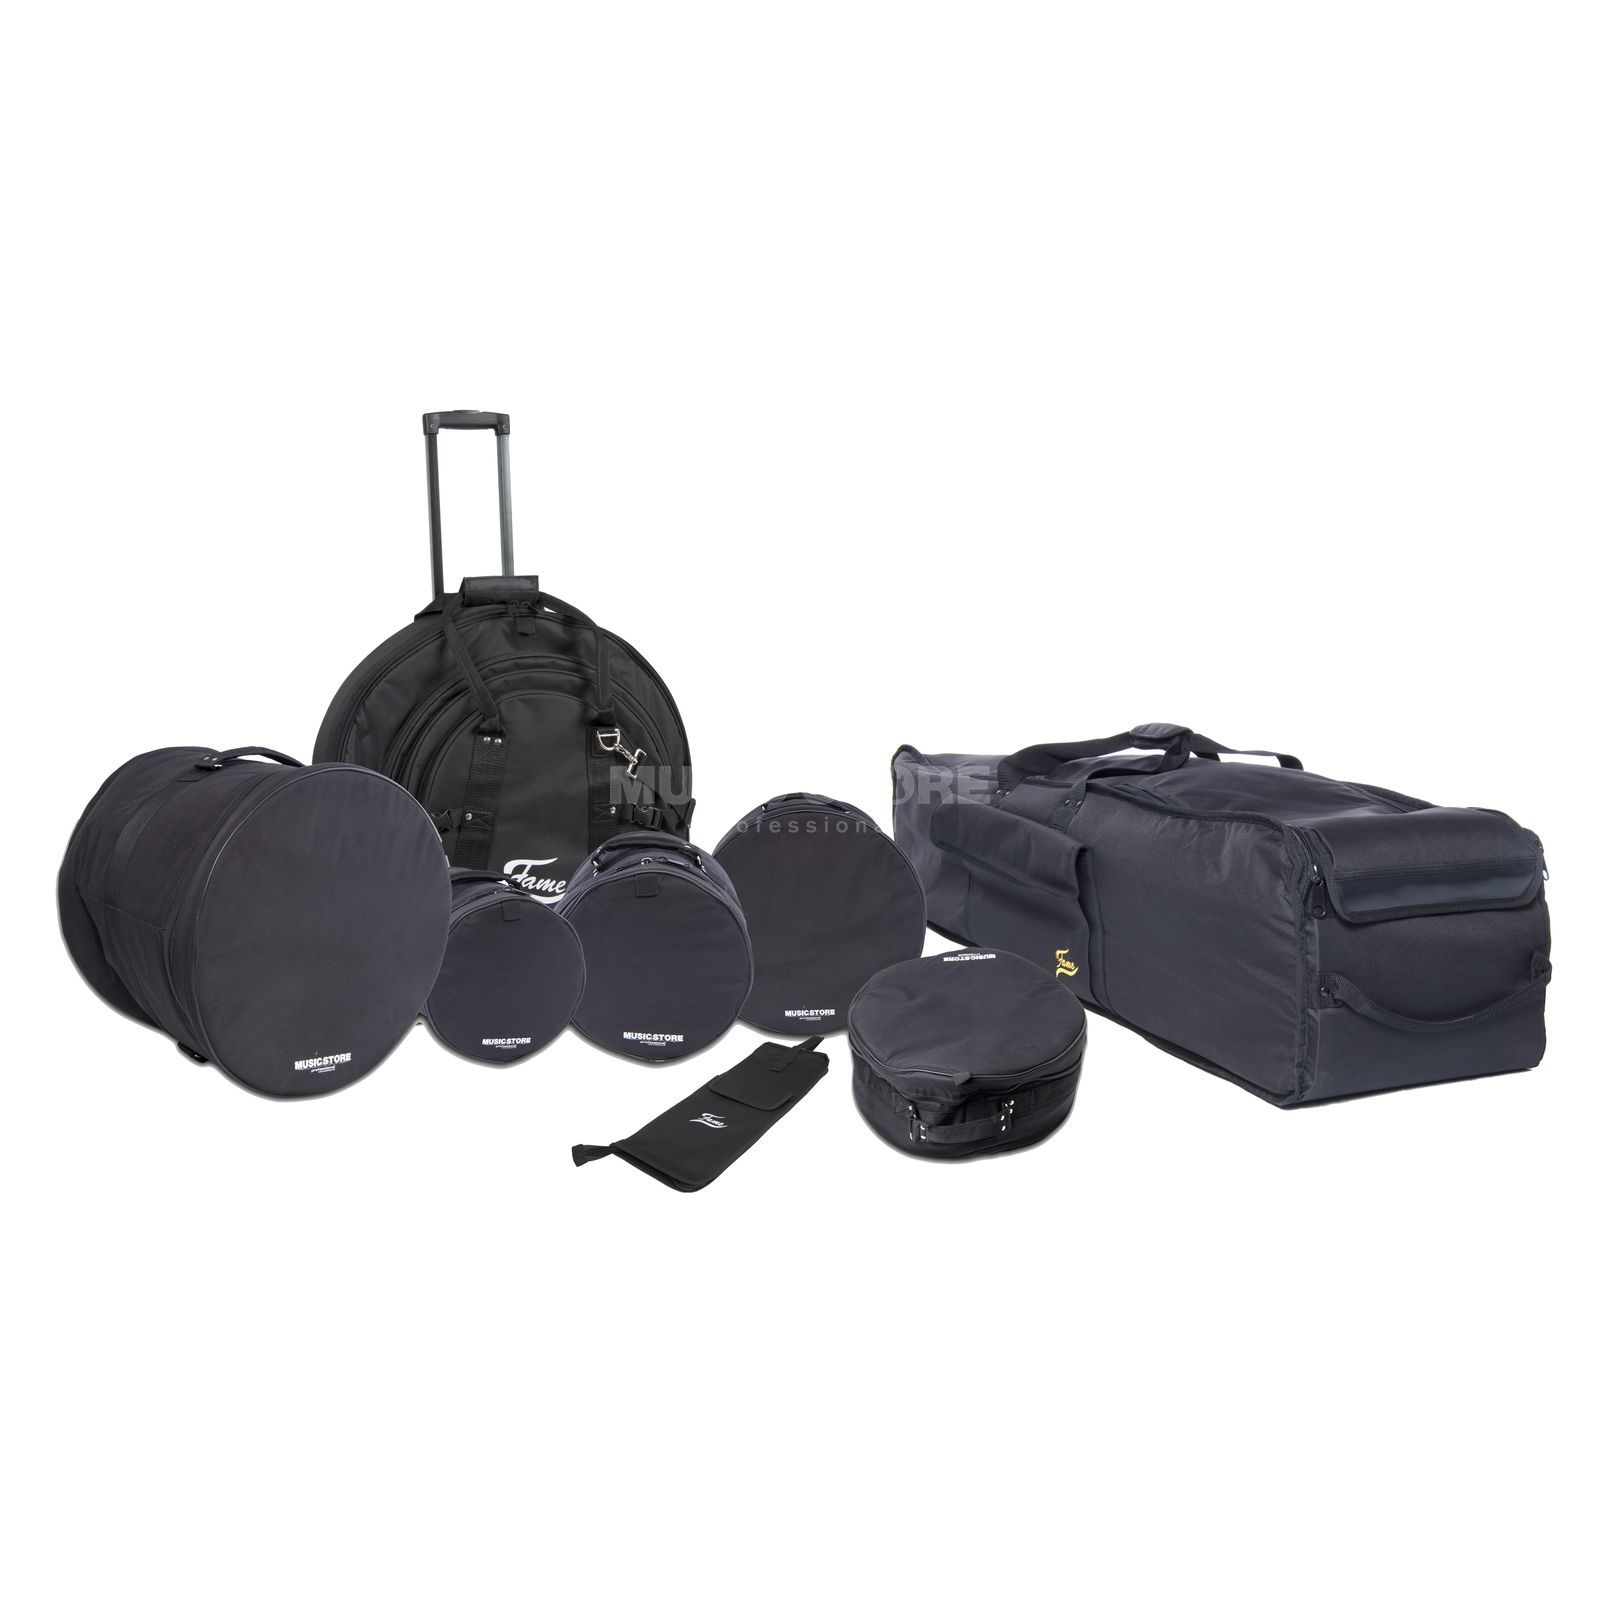 SET MUSICSTORE Bag Set XXL Studio Produktbild